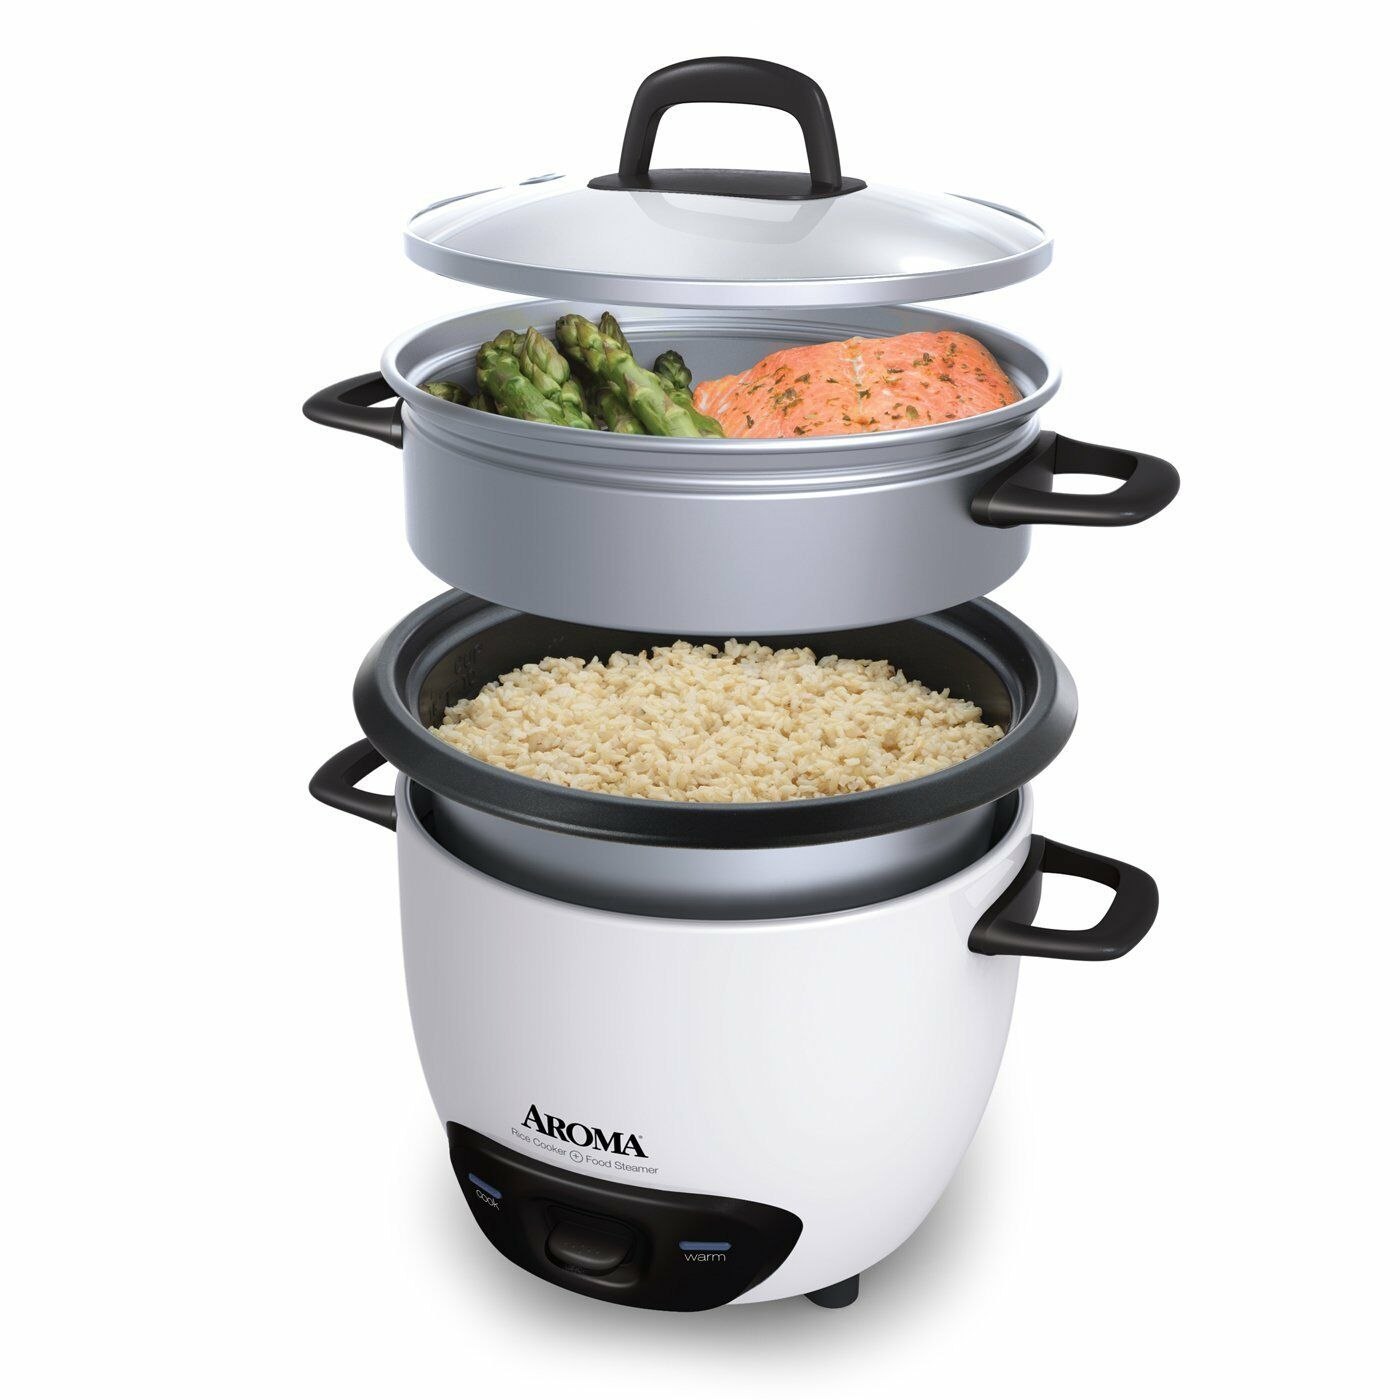 New★aroma Rice Cooker Amp Food Steamer Non Stick Chilis Stews Meats ...